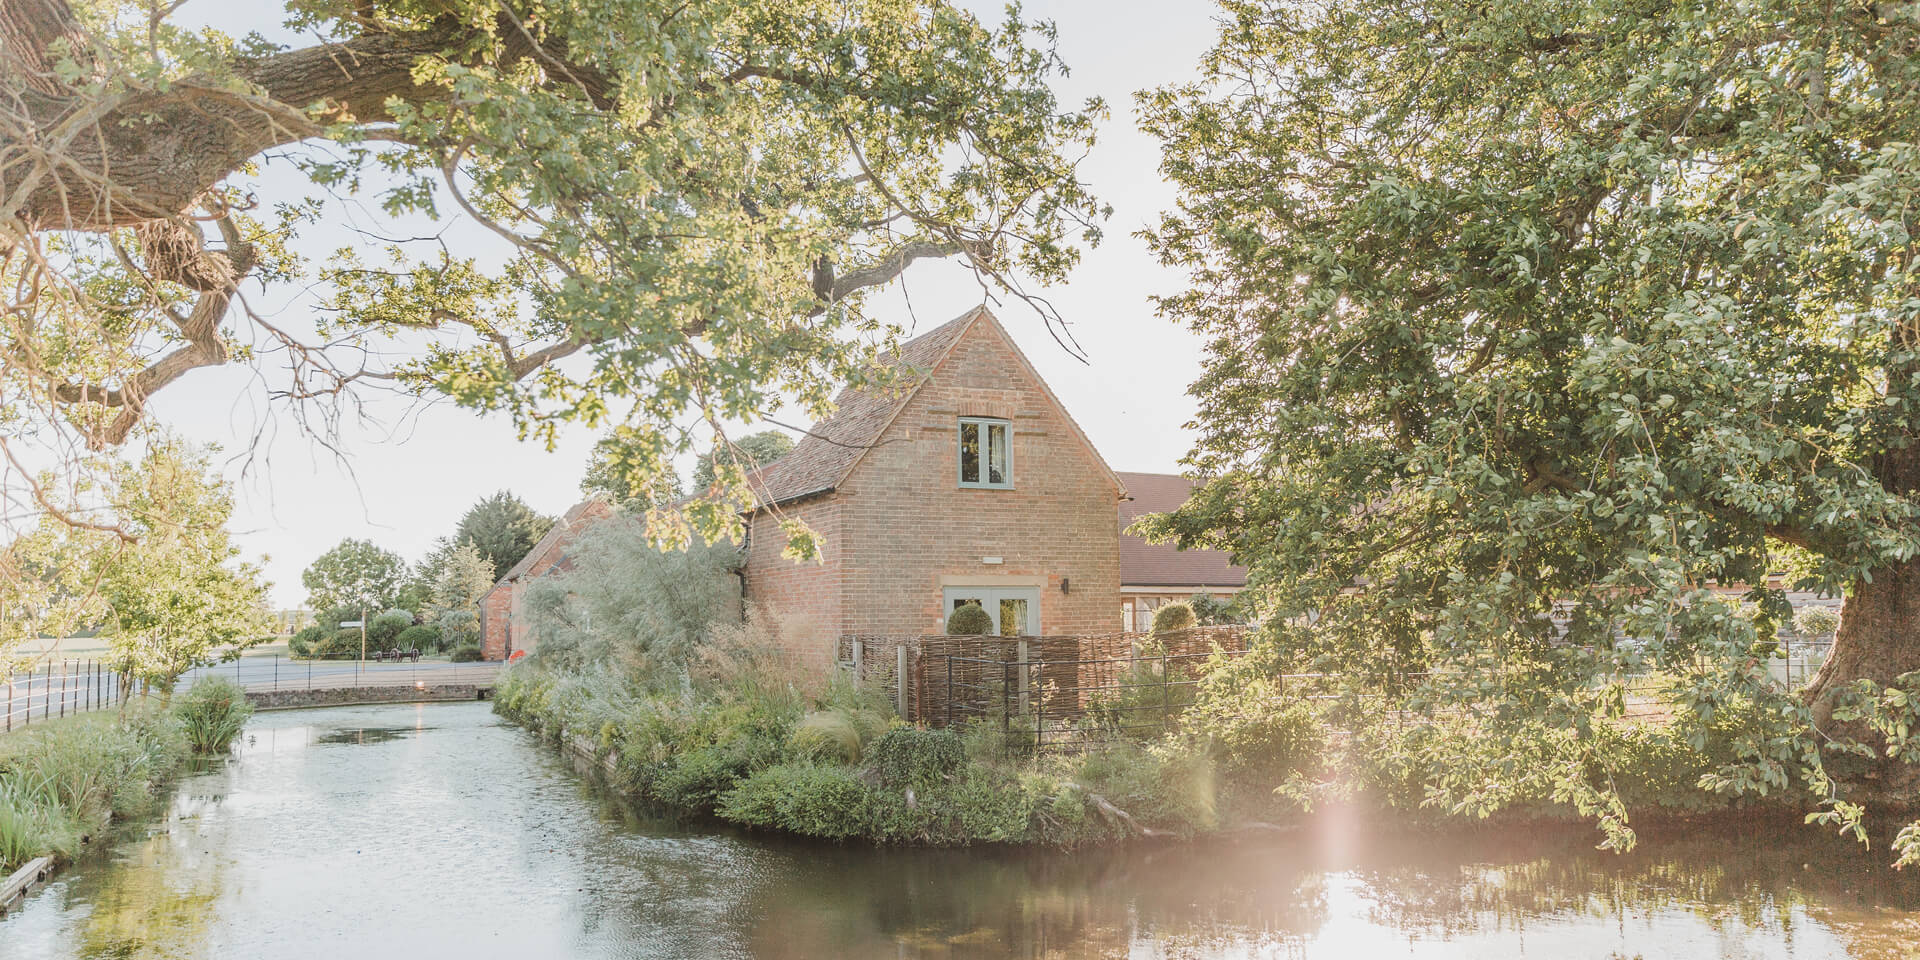 If you're looking for a barn wedding venue in Cambridgeshire come and visit the beautiful Bassmead Manor Barns